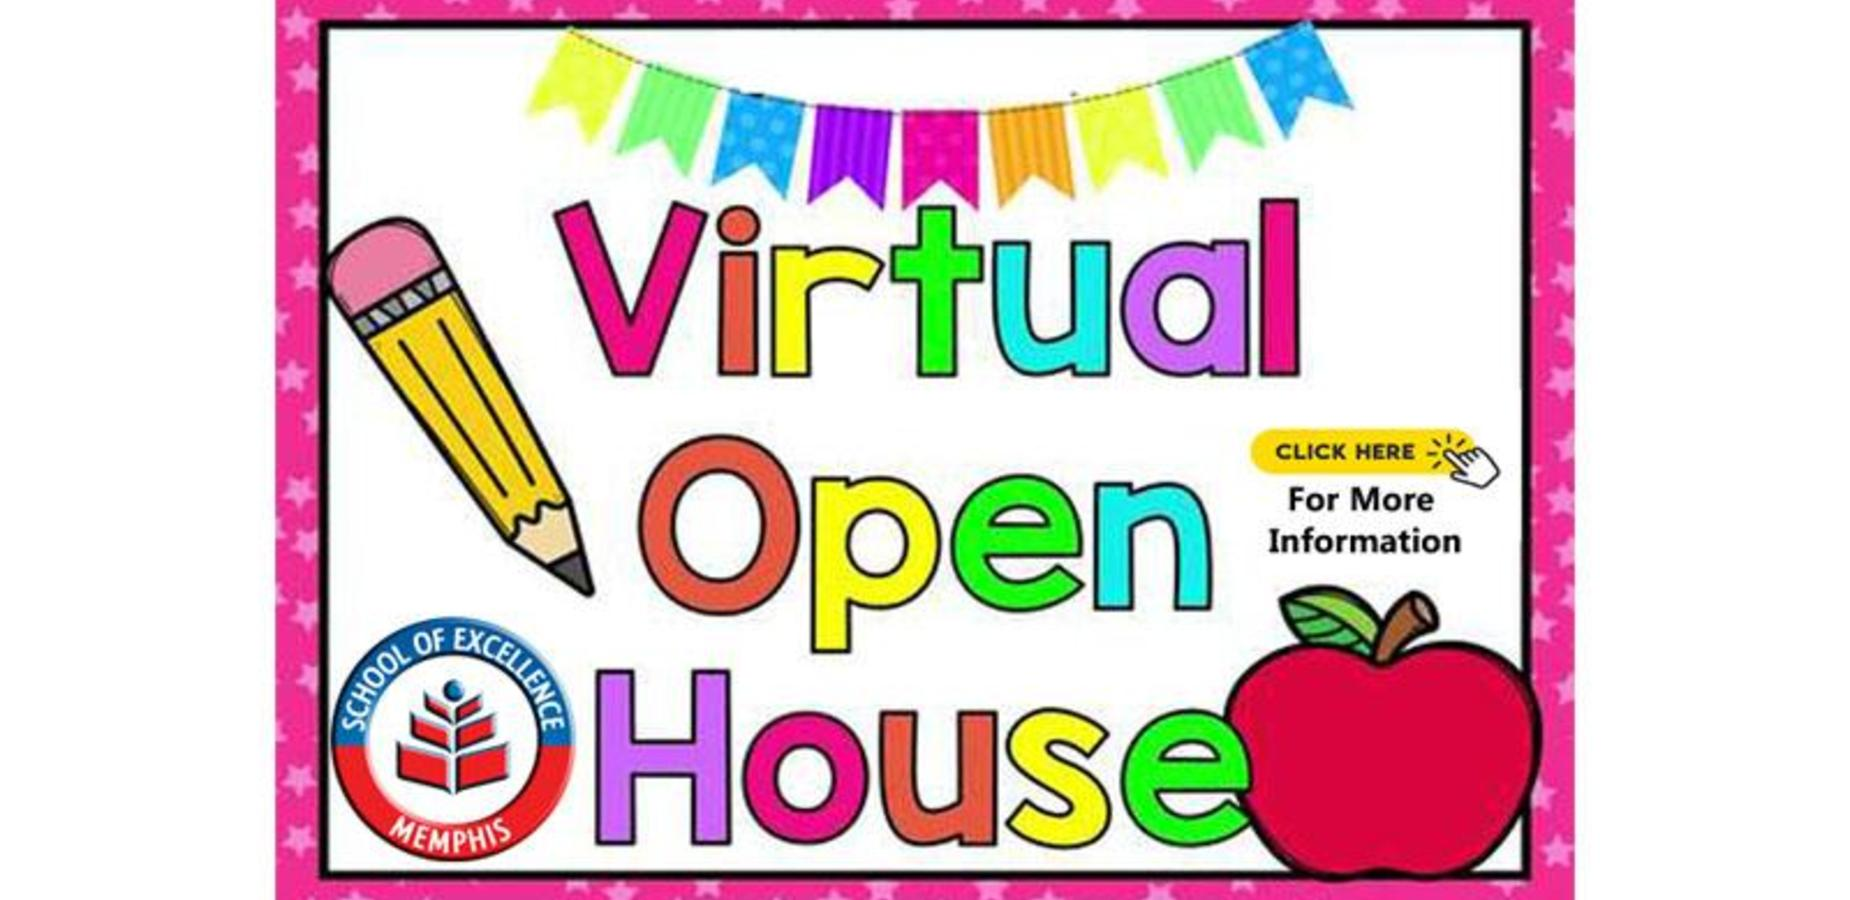 MSE Virtual Open House